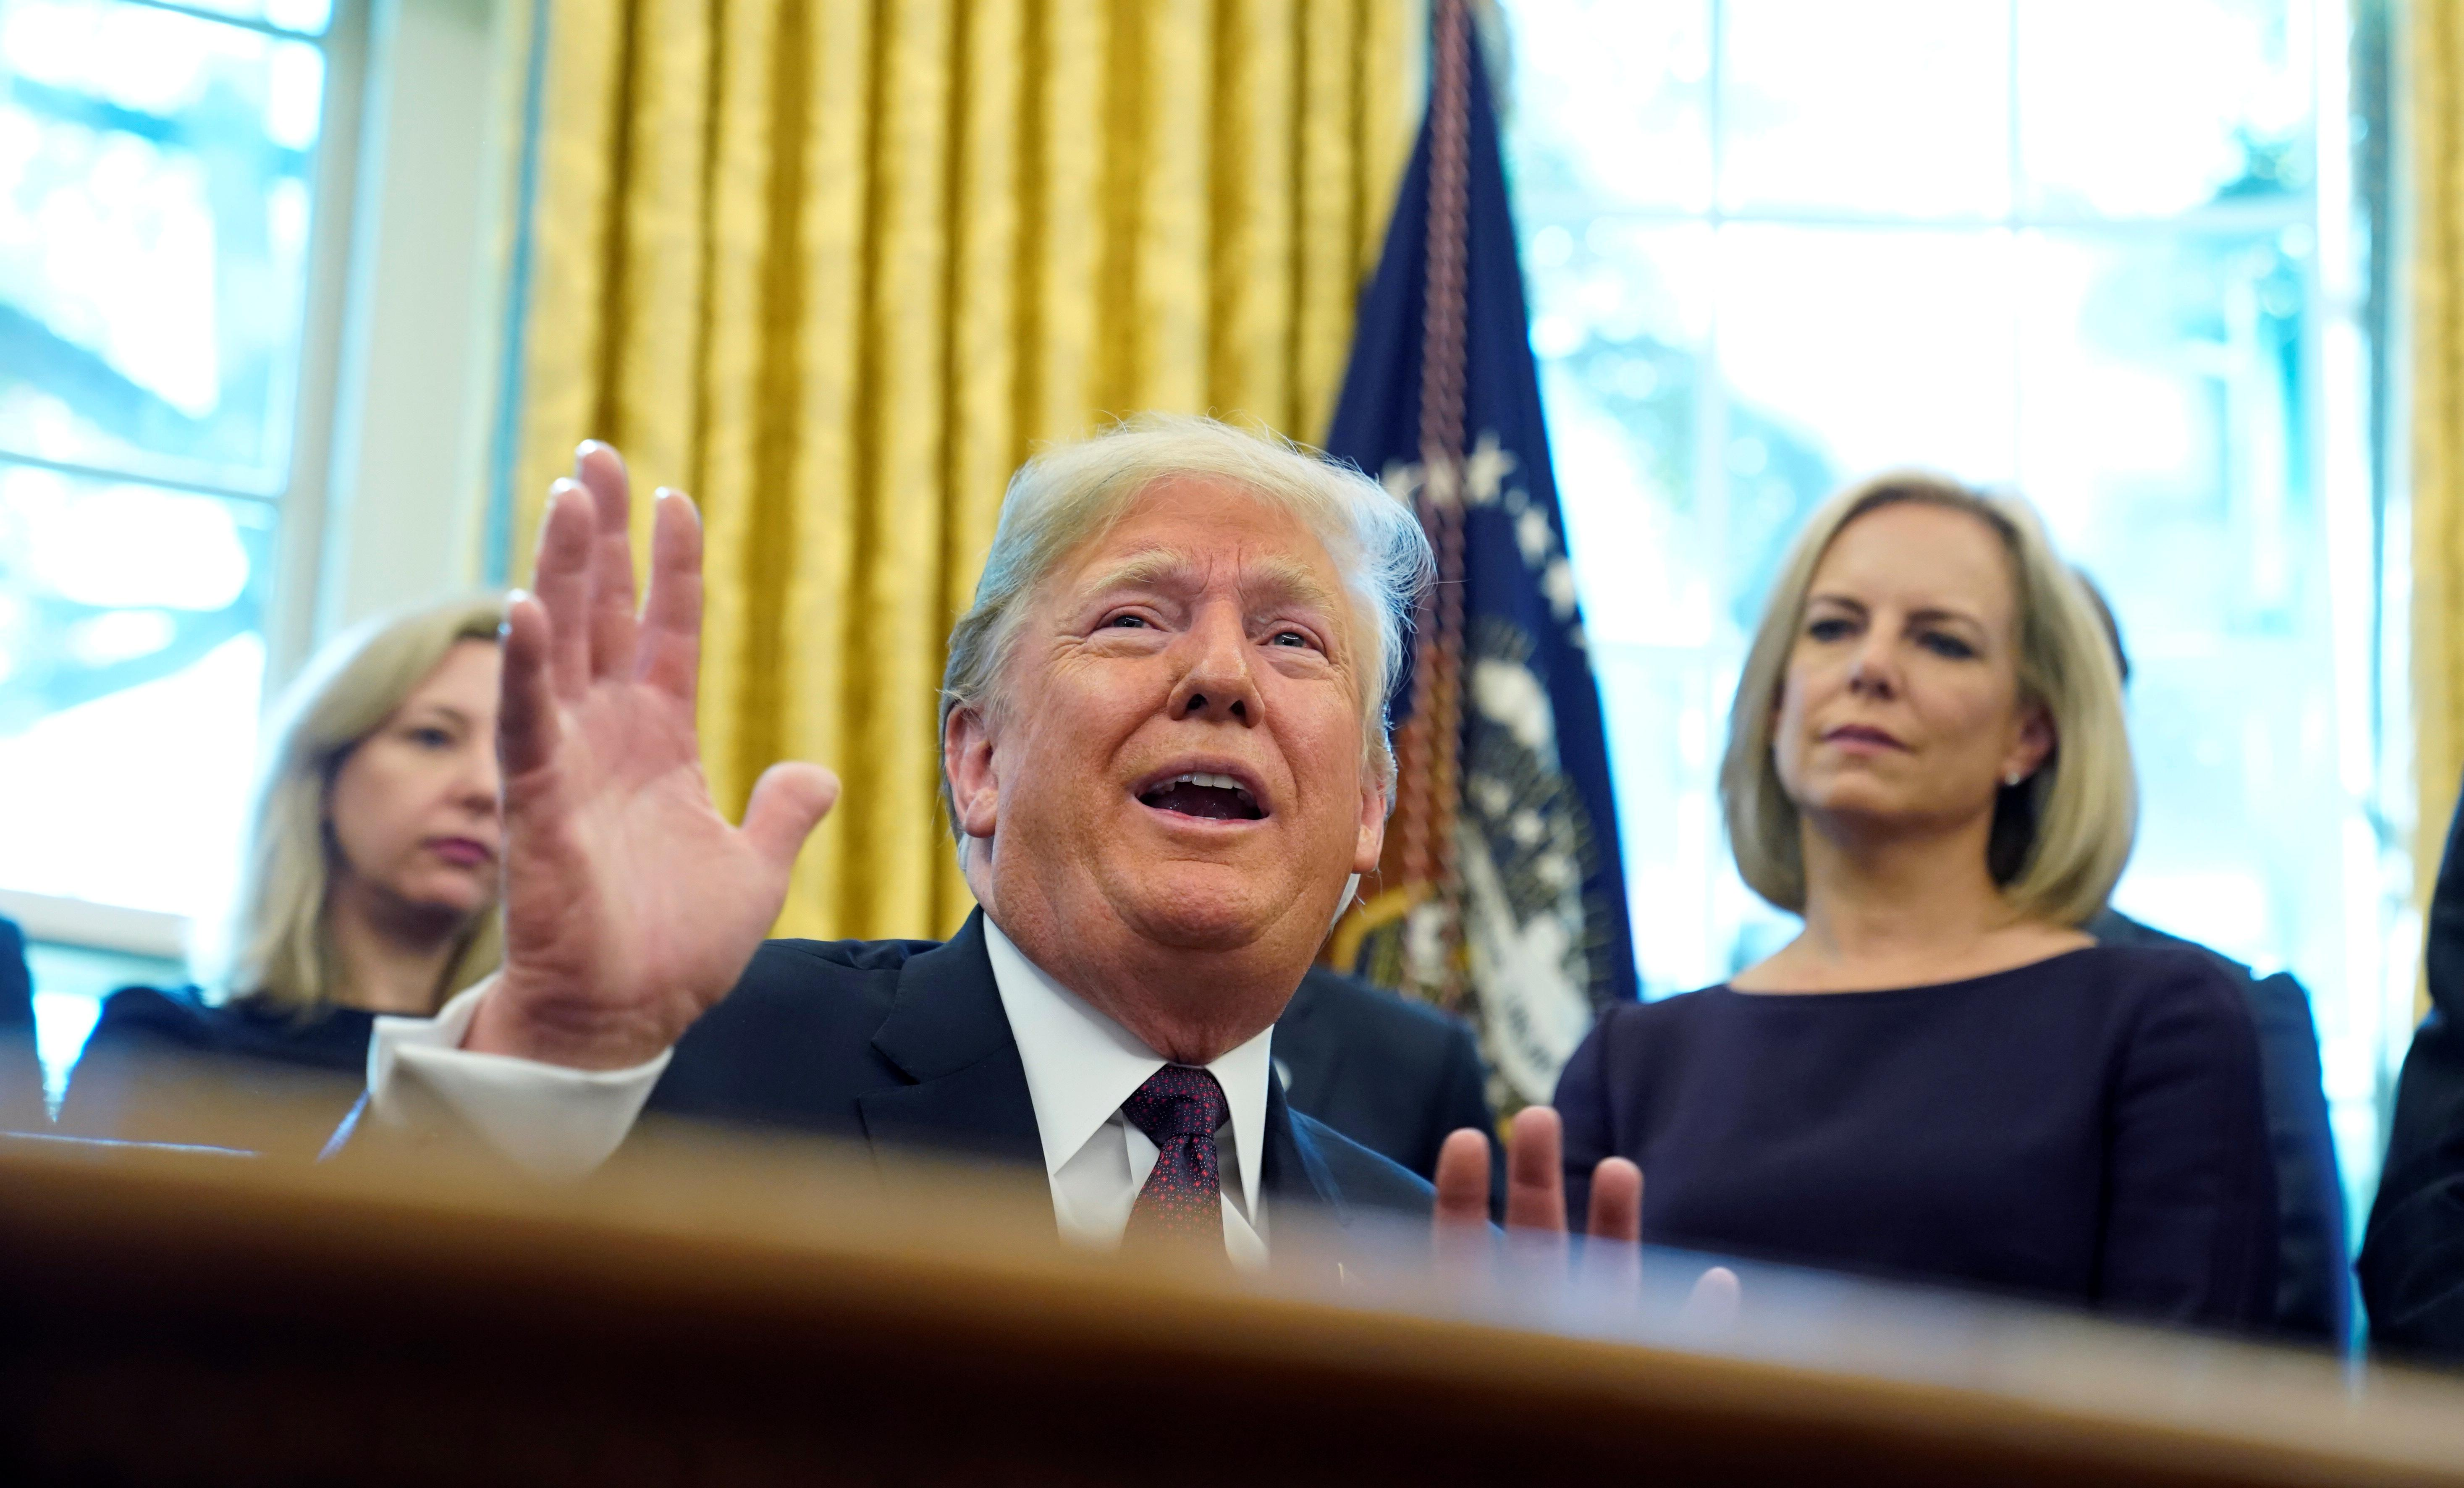 U.S. President Donald Trump talks to reporters as Department of Homeland Security Secretary Kirstjen Nielsen (R) looks on at a signing ceremony for the Cybersecurity and Infrastructure Security Agency Act in the Oval Office of the White House in Washington, U.S. November 16, 2018. Jonathan Ernst